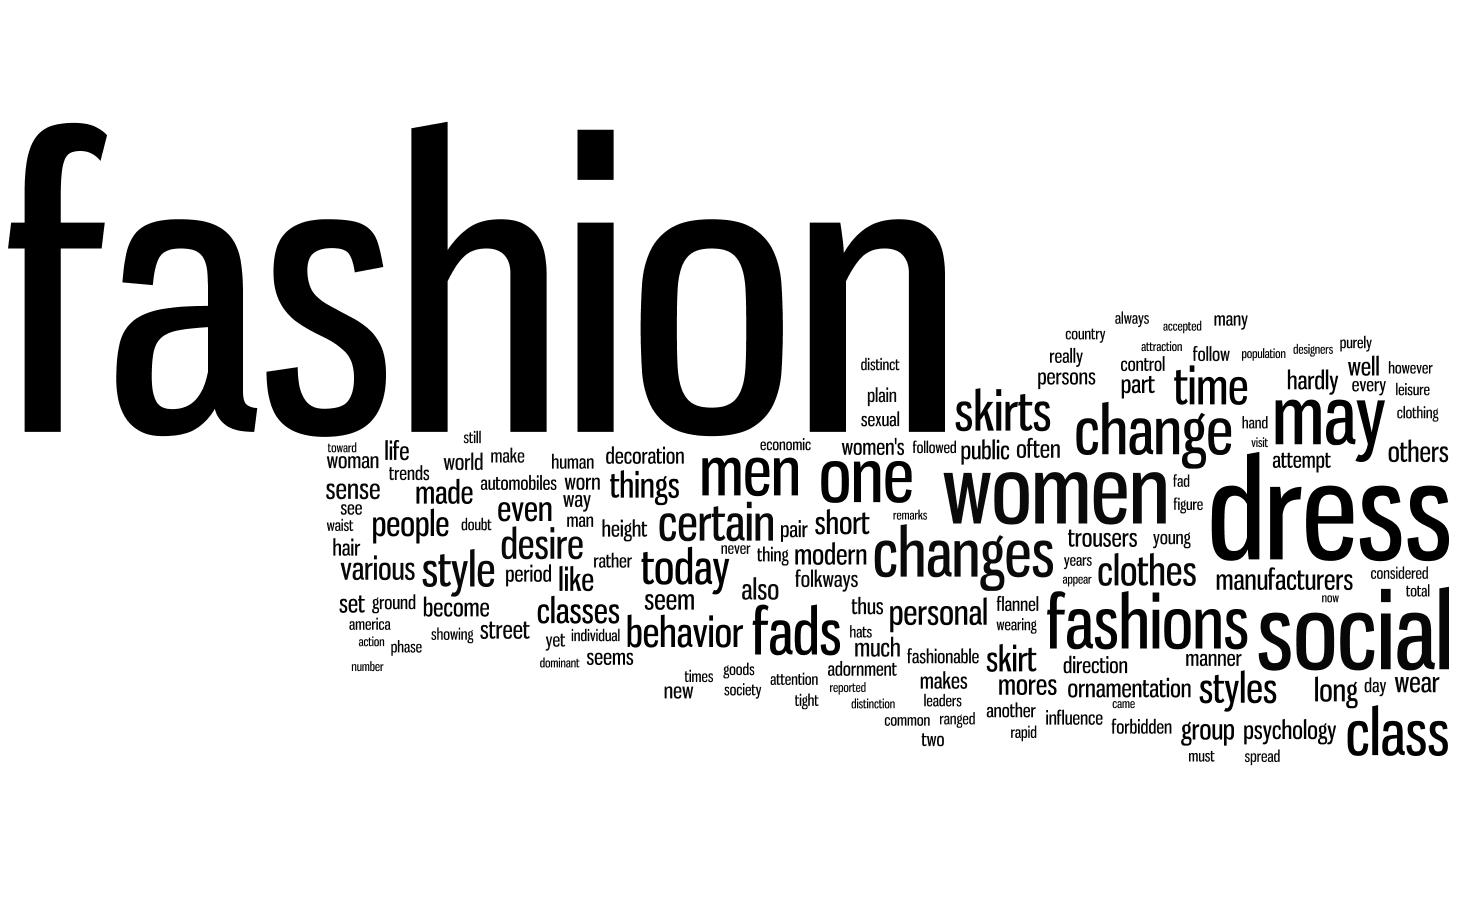 an analysis of fashion and society Ethical issues in the fashion industry - fashion is everything to society and the media the fashion industry has analysis of the fashion industry.